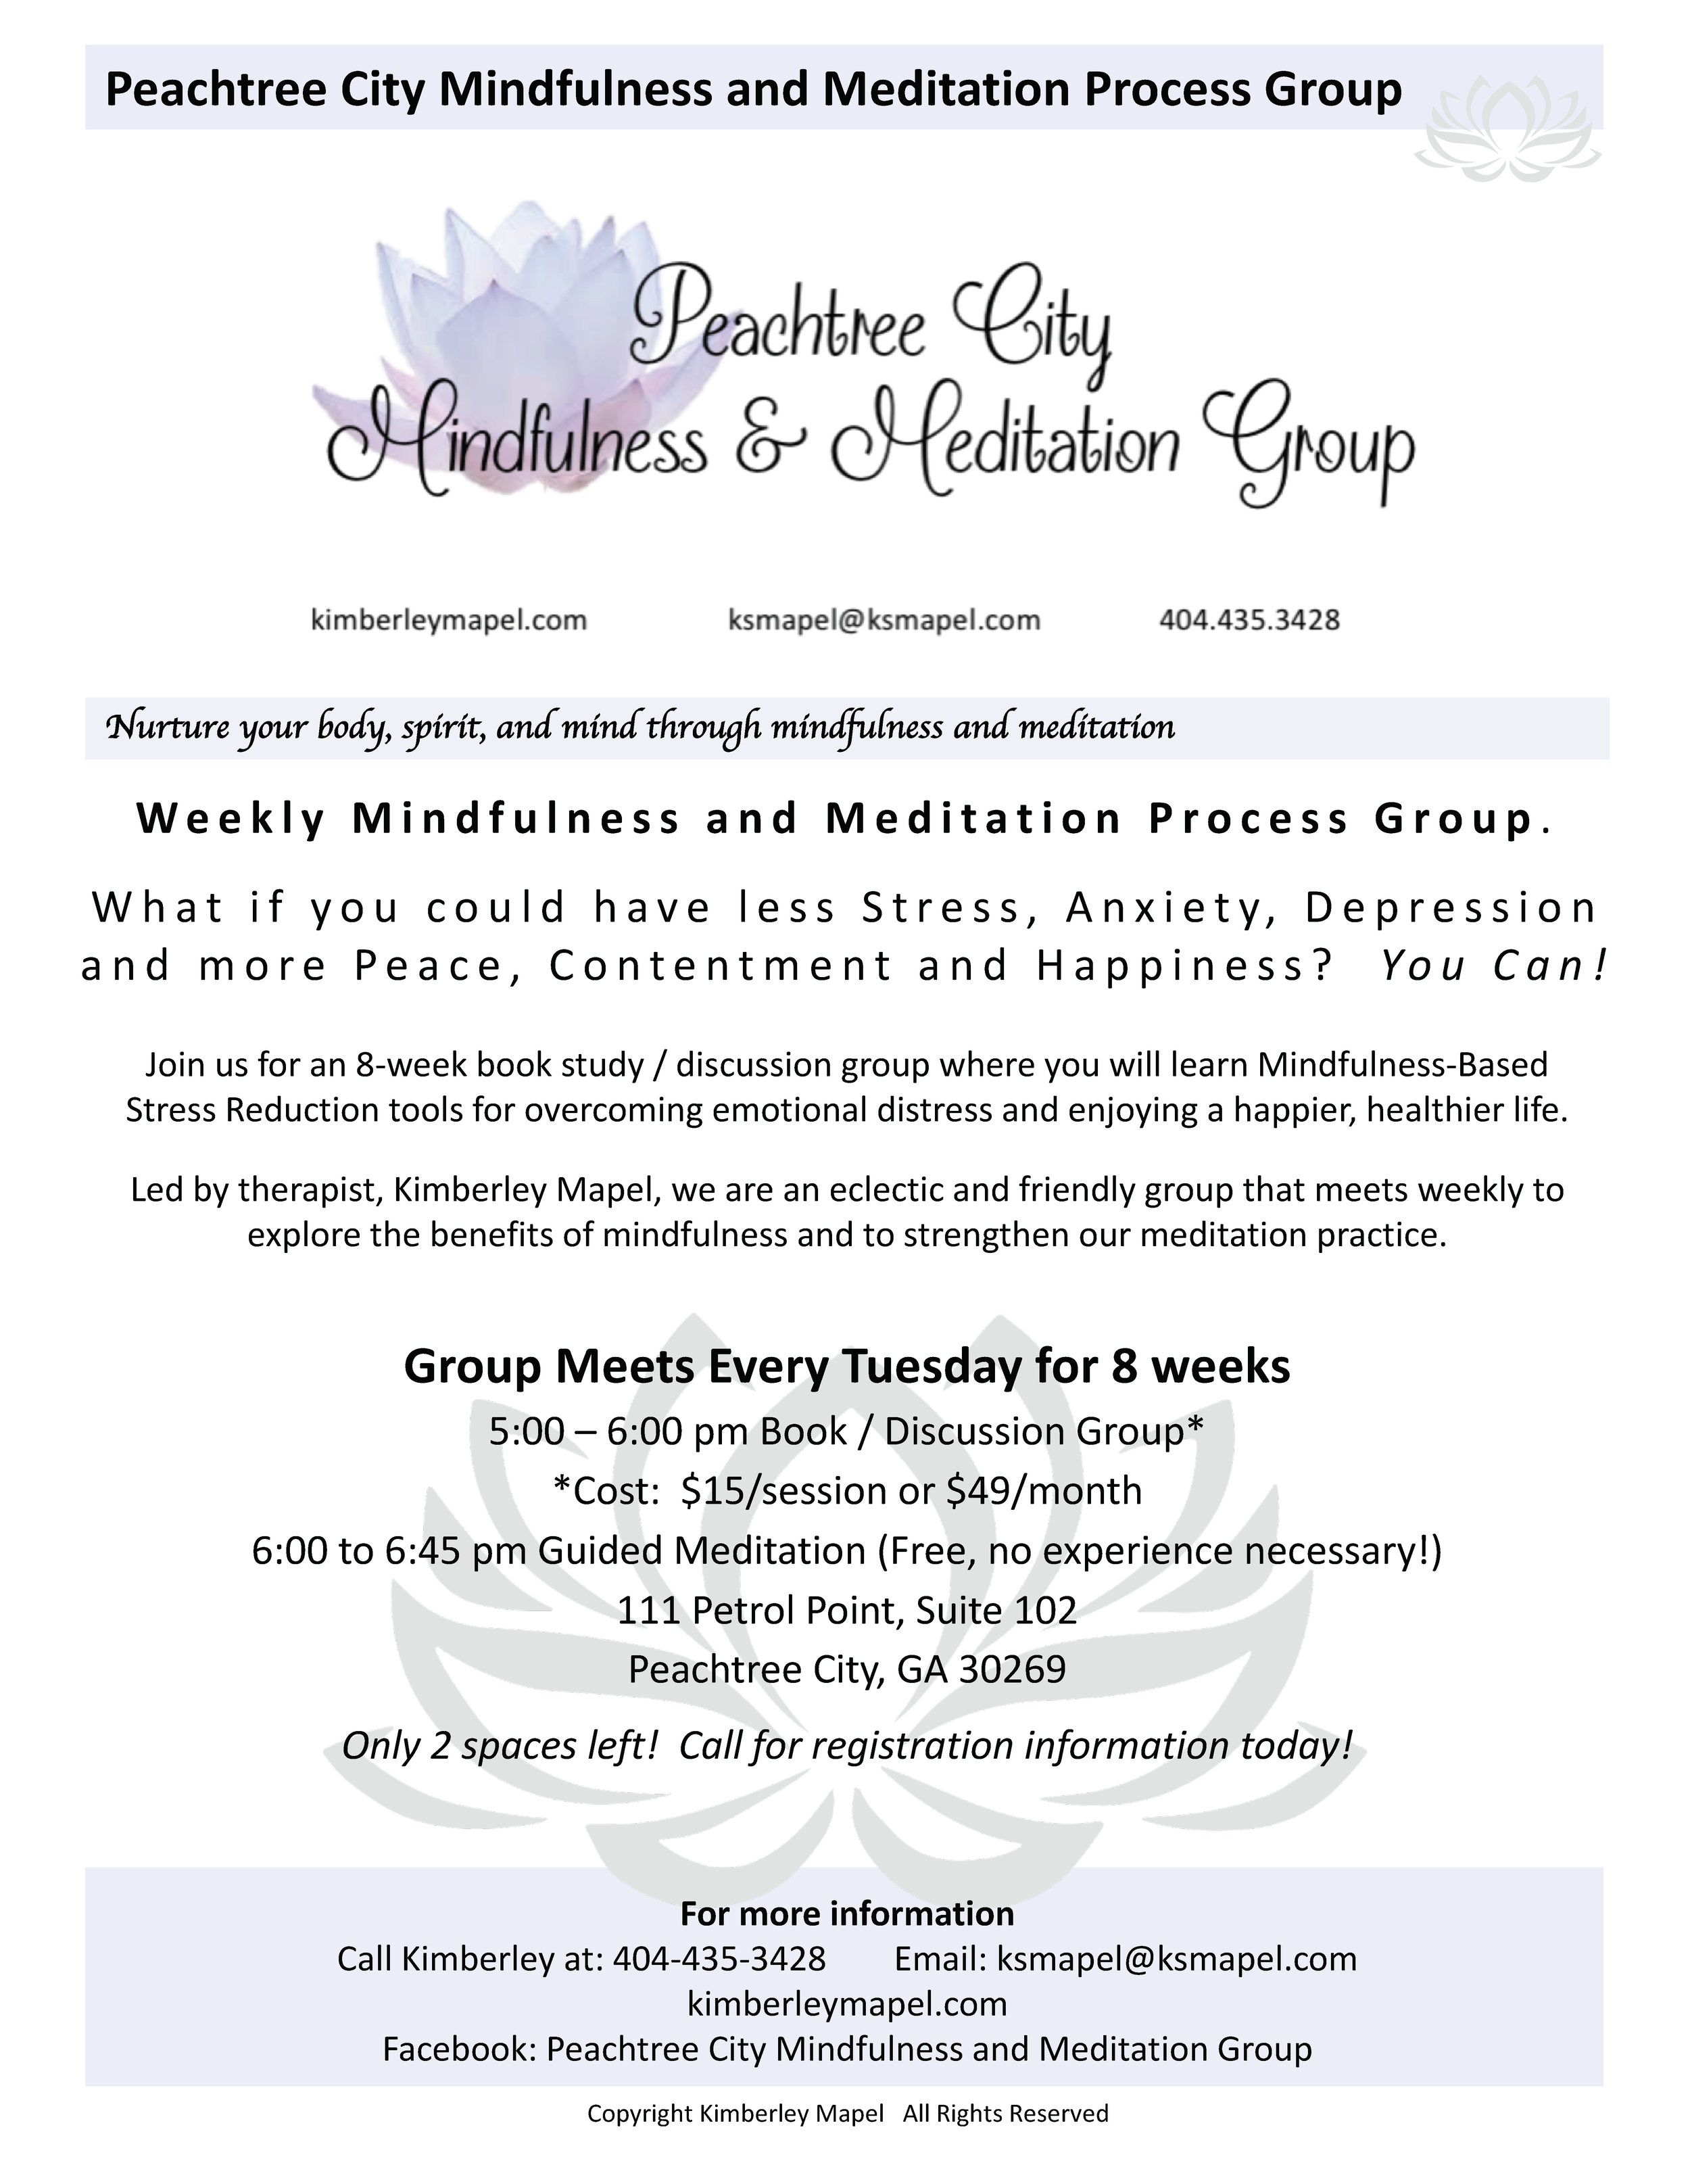 MM Process Group Flyer 1-29-2017.png